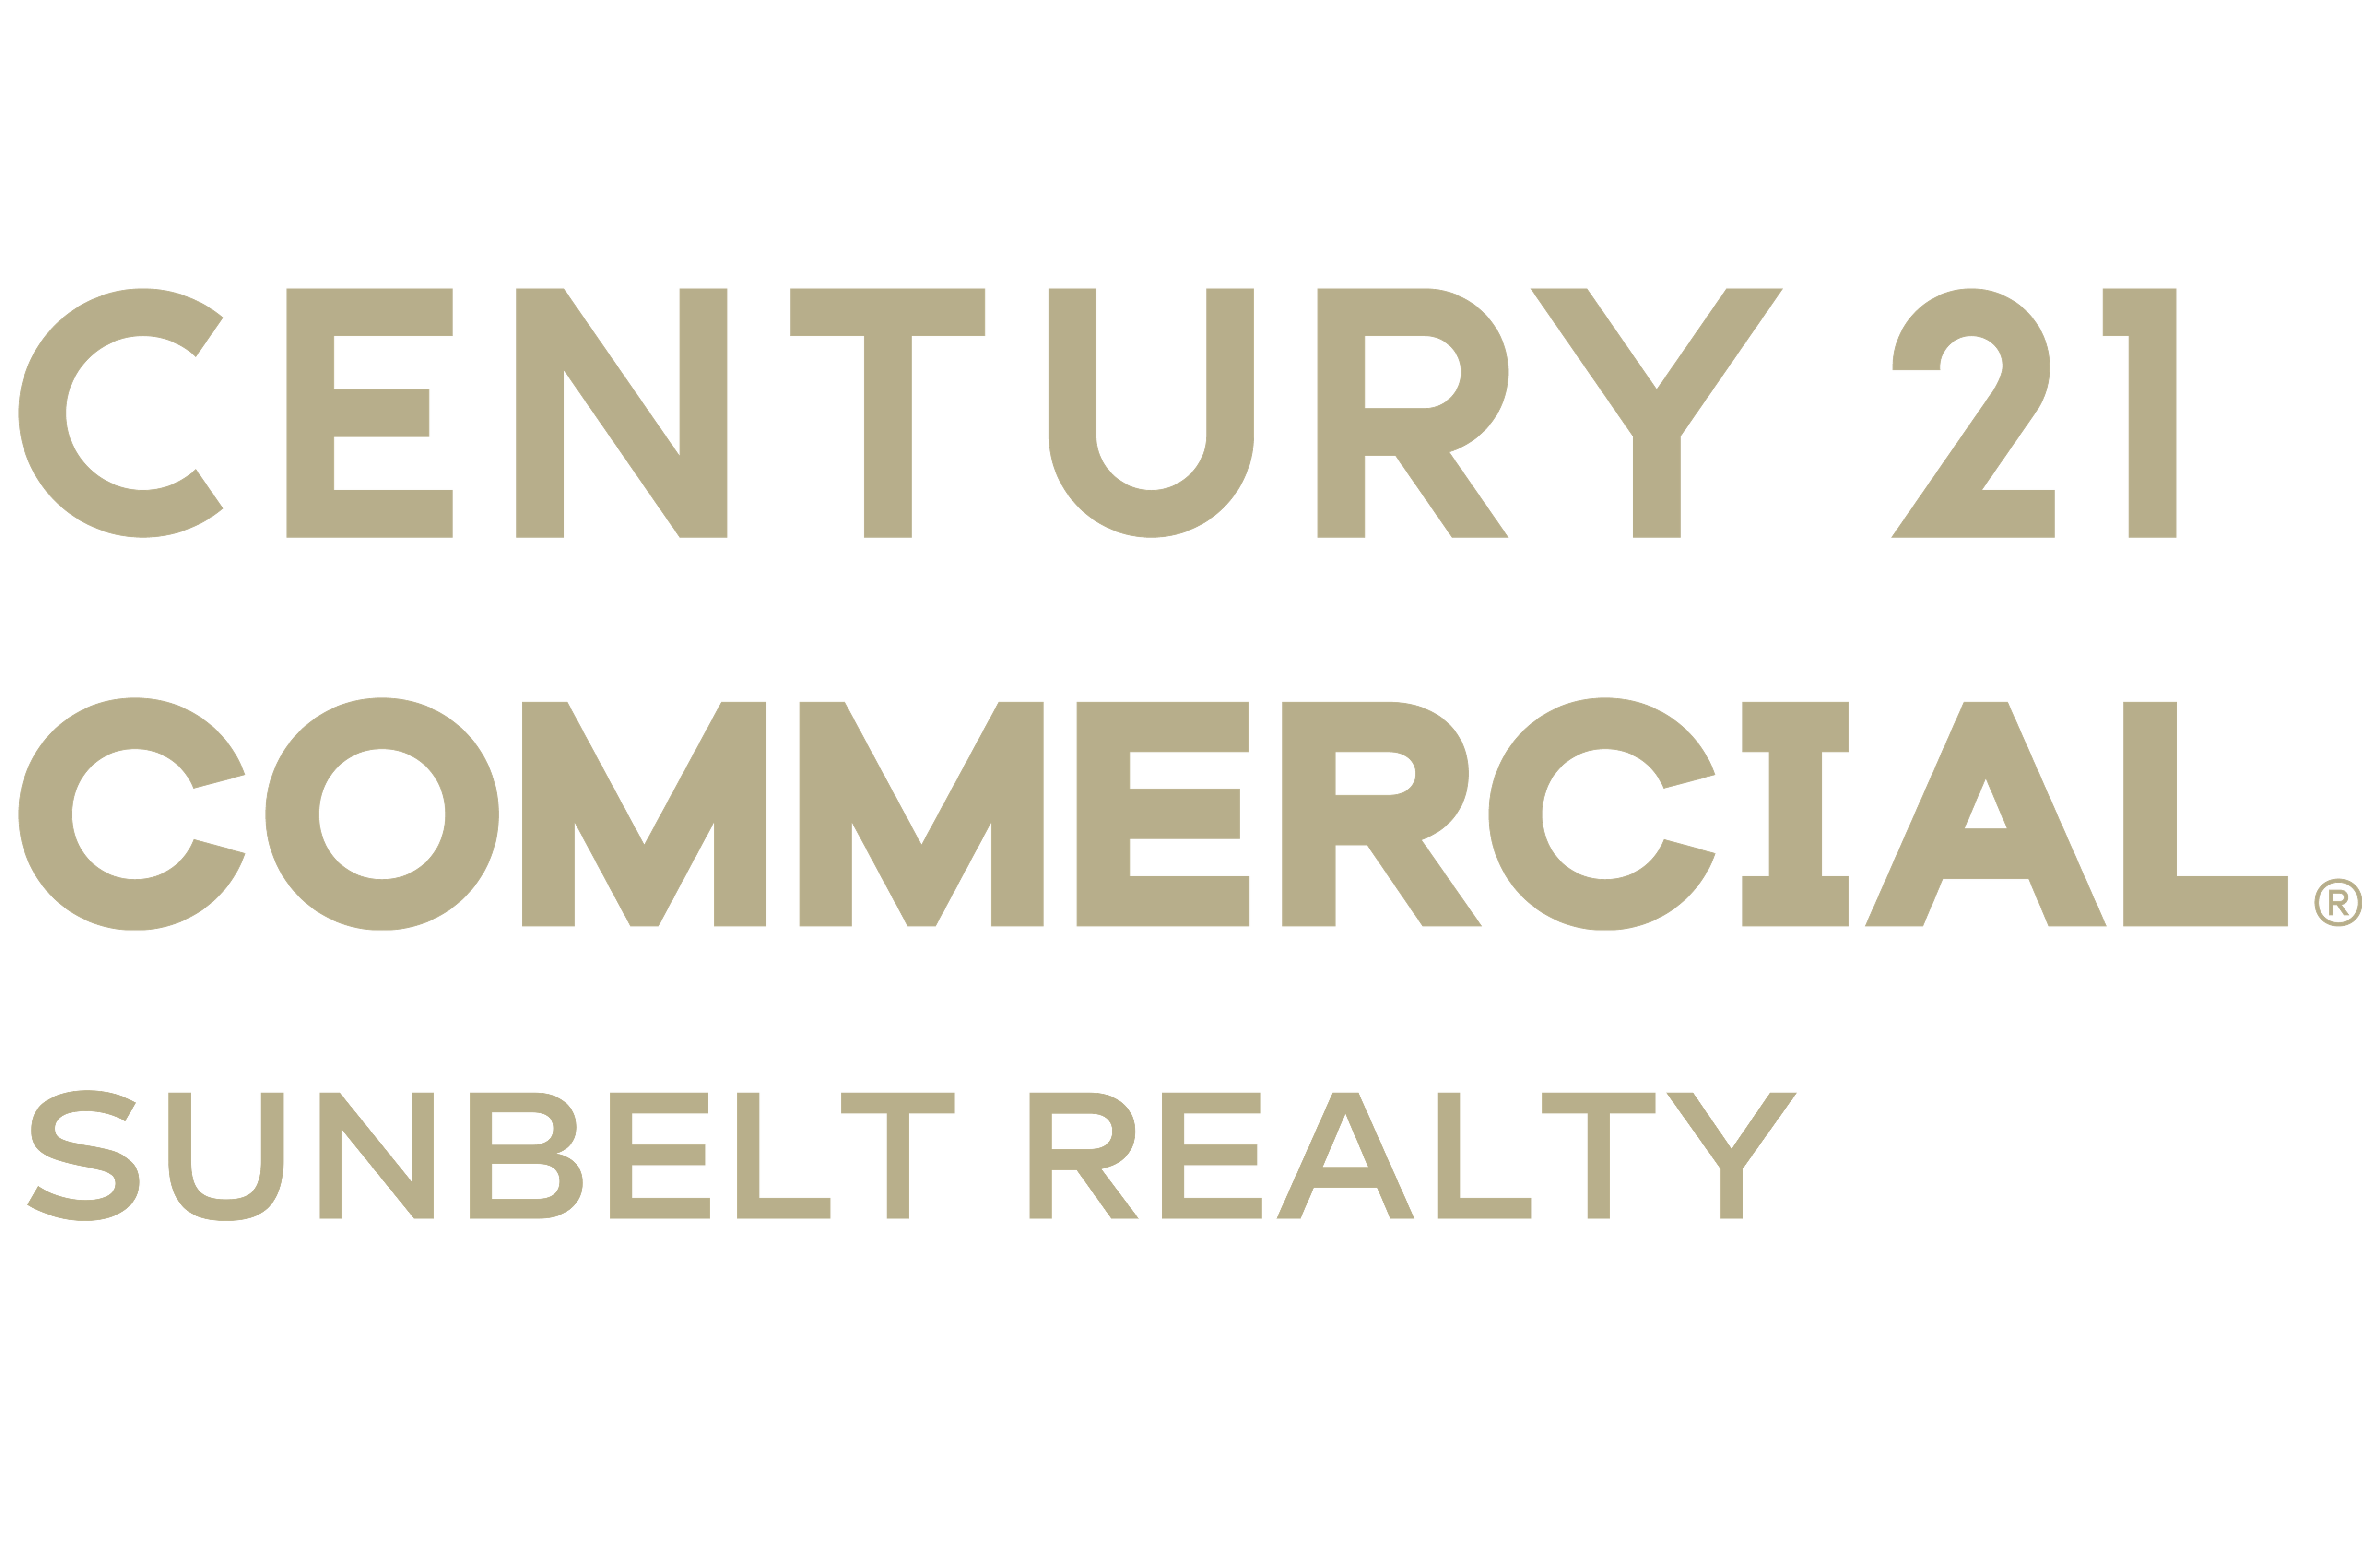 Robert Pecoraro of CENTURY 21 SUNBELT REALTY logo